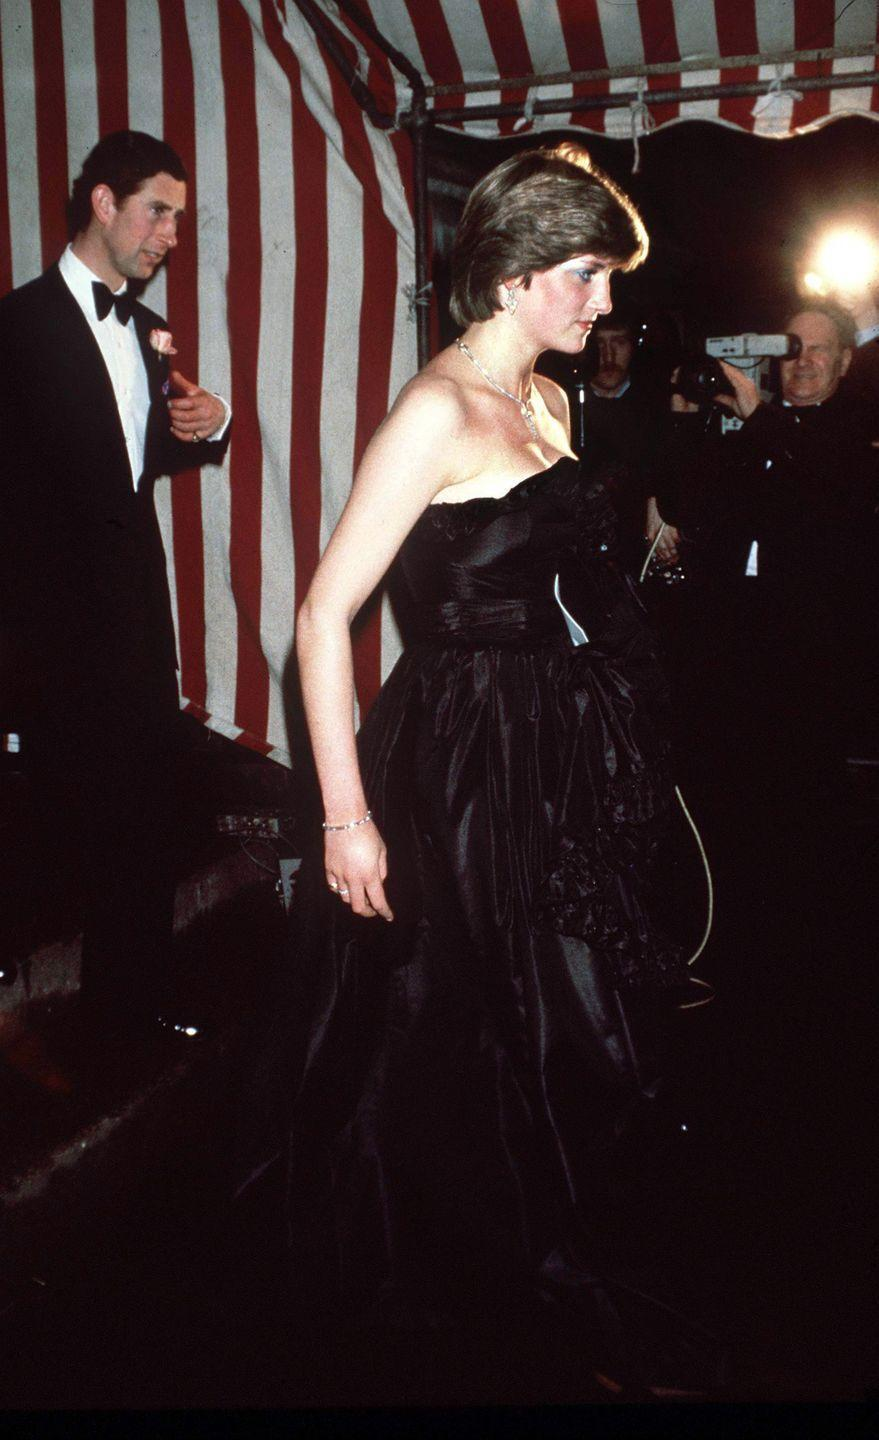 <p>In a black taffeta dress by the The Emanuels, with a diamond tennis bracelet and necklace attending a fundraising concert at Goldsmiths Hall in London. </p>